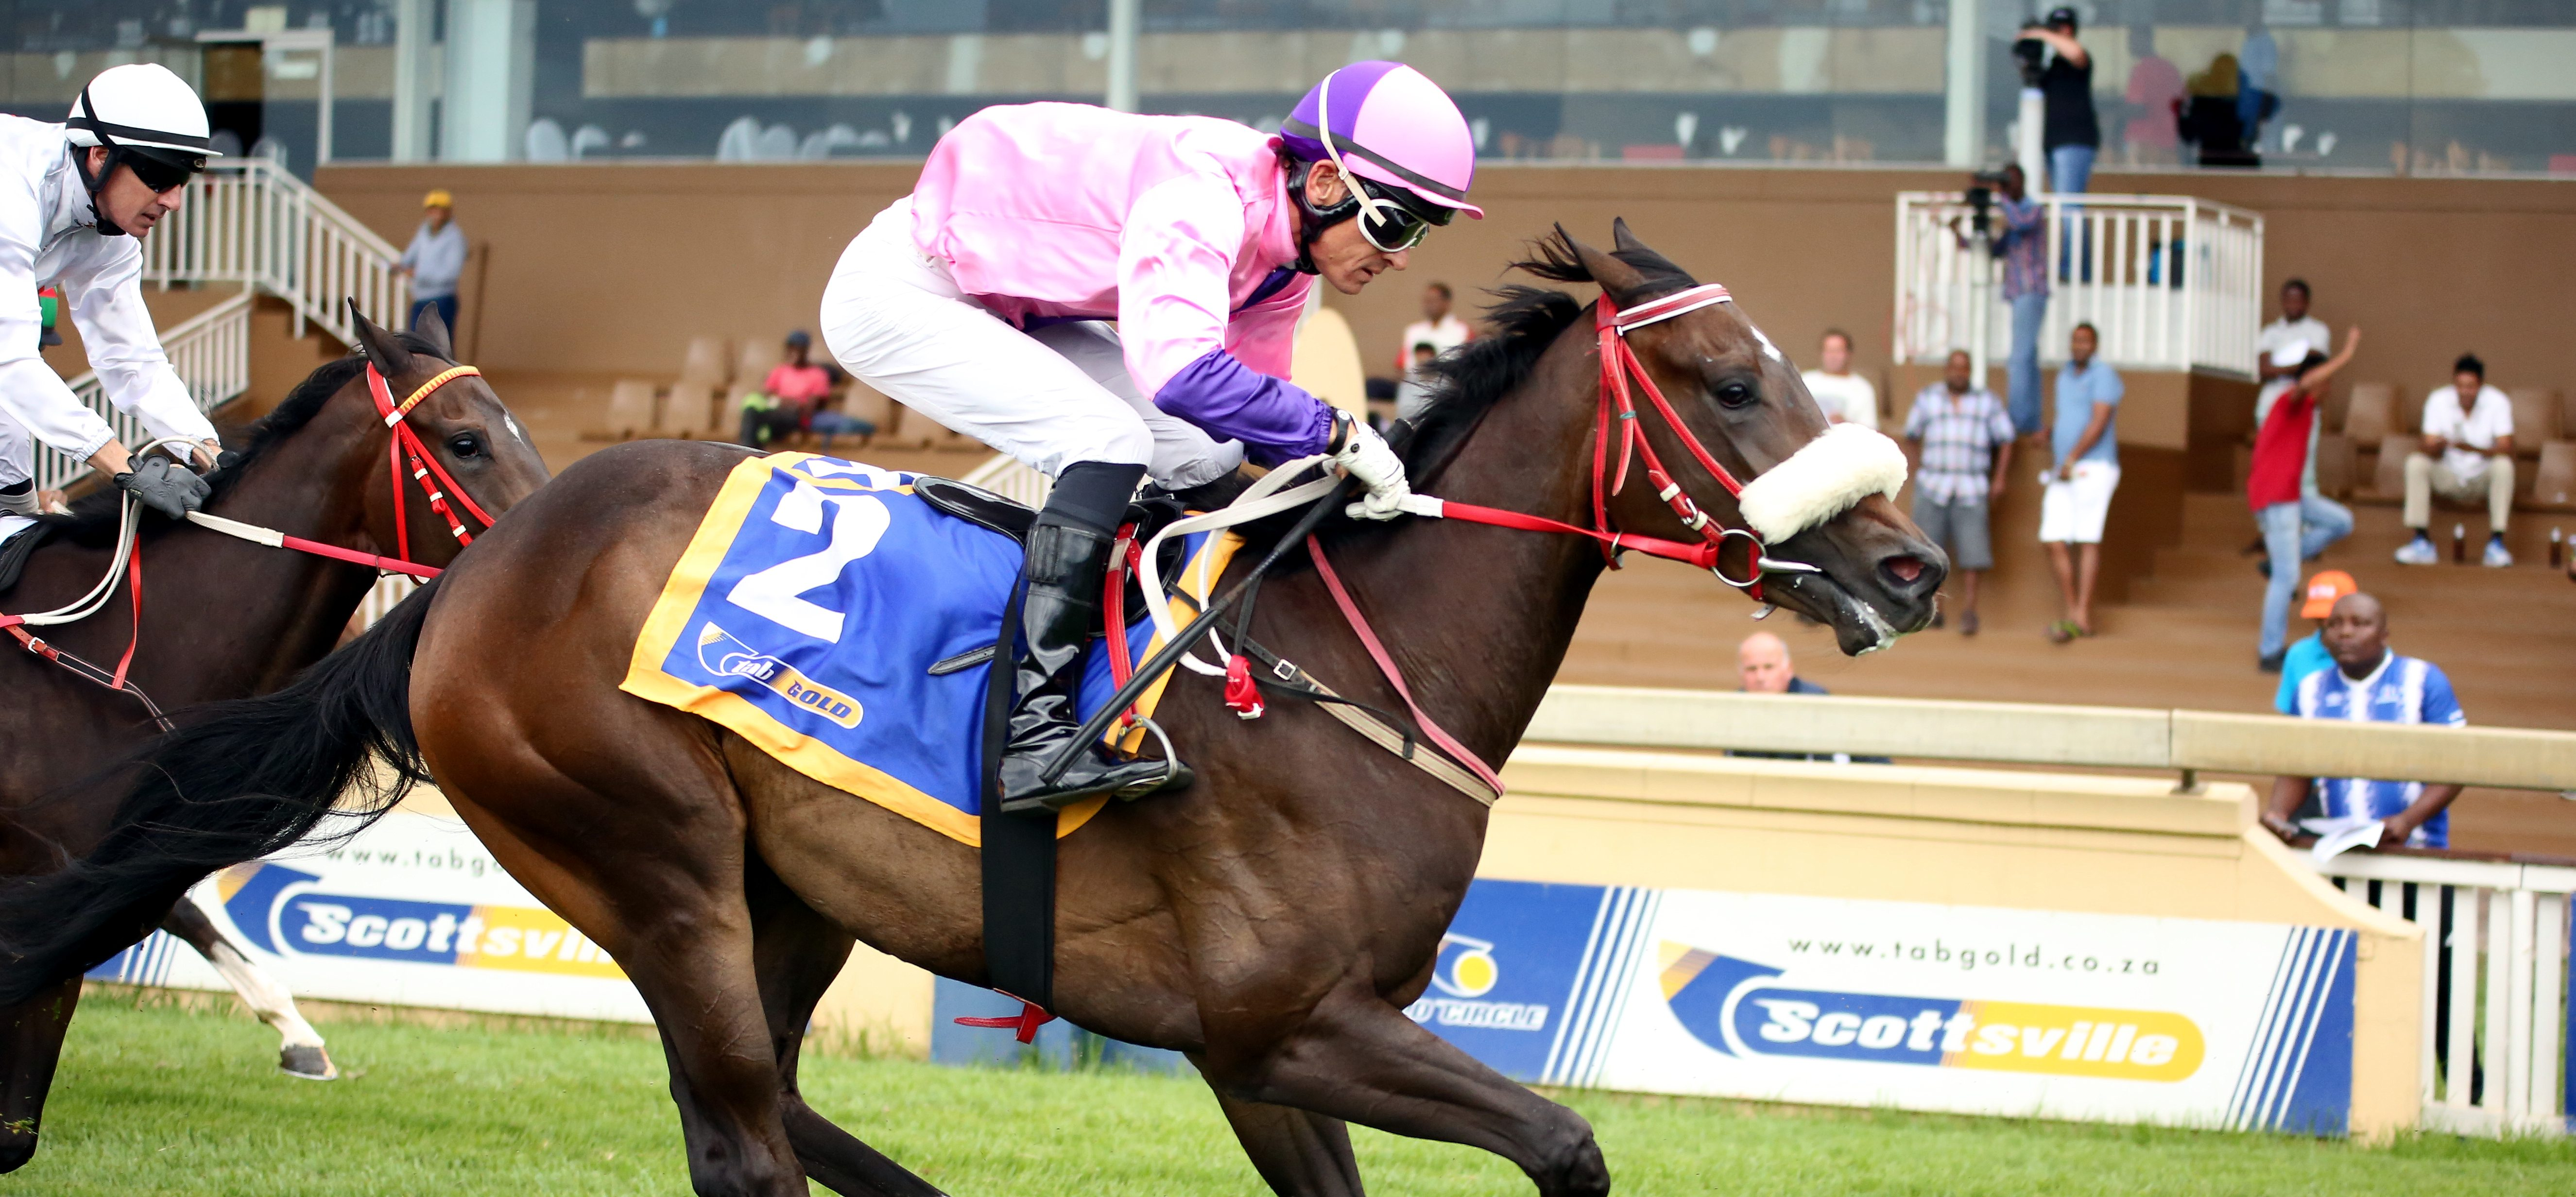 The first winner for Noble Tune, the juvenile filly Awesomely Tuned. Image: Candiese Marnewick